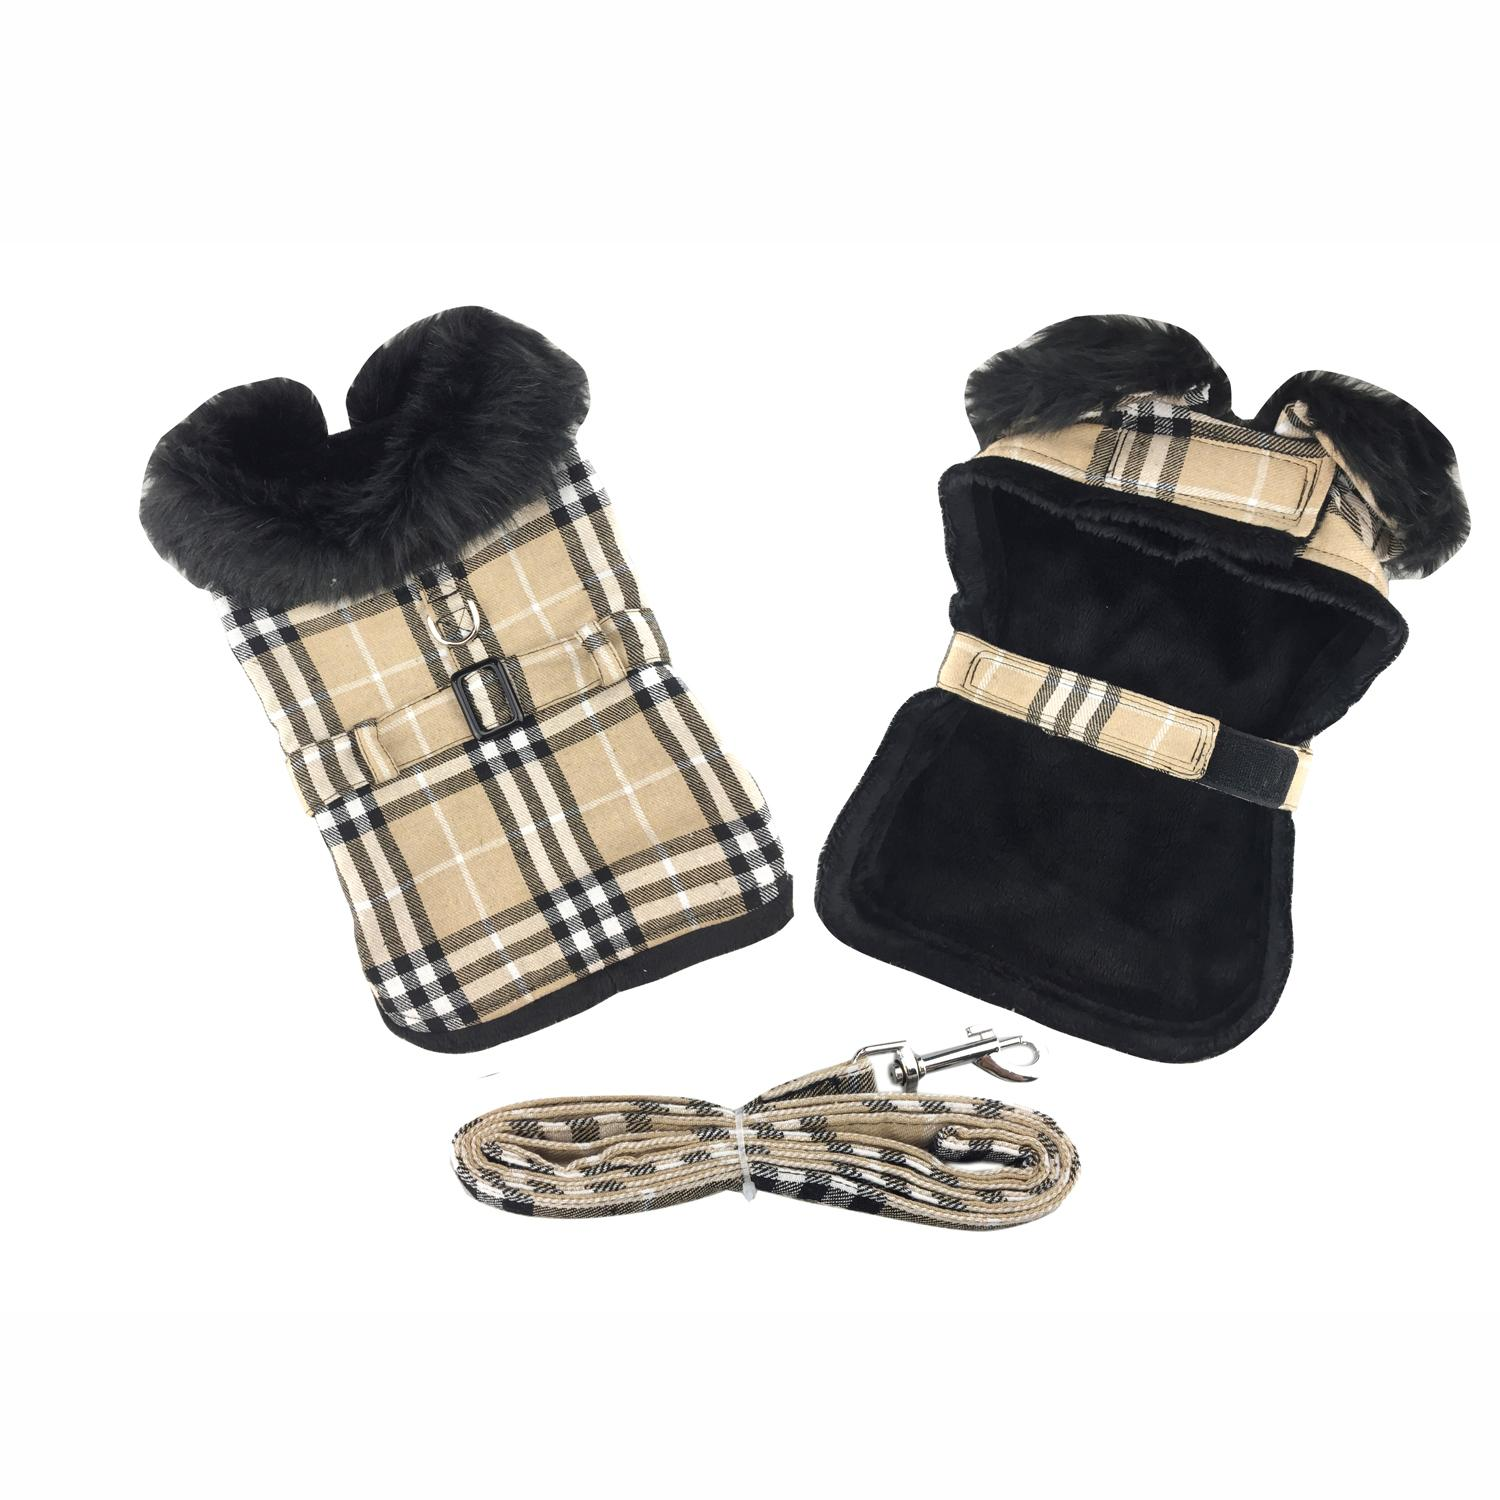 Doggie Design Designer Dog Coat Harness with Matching Leash, Camel Plaid with Black Fur, Small